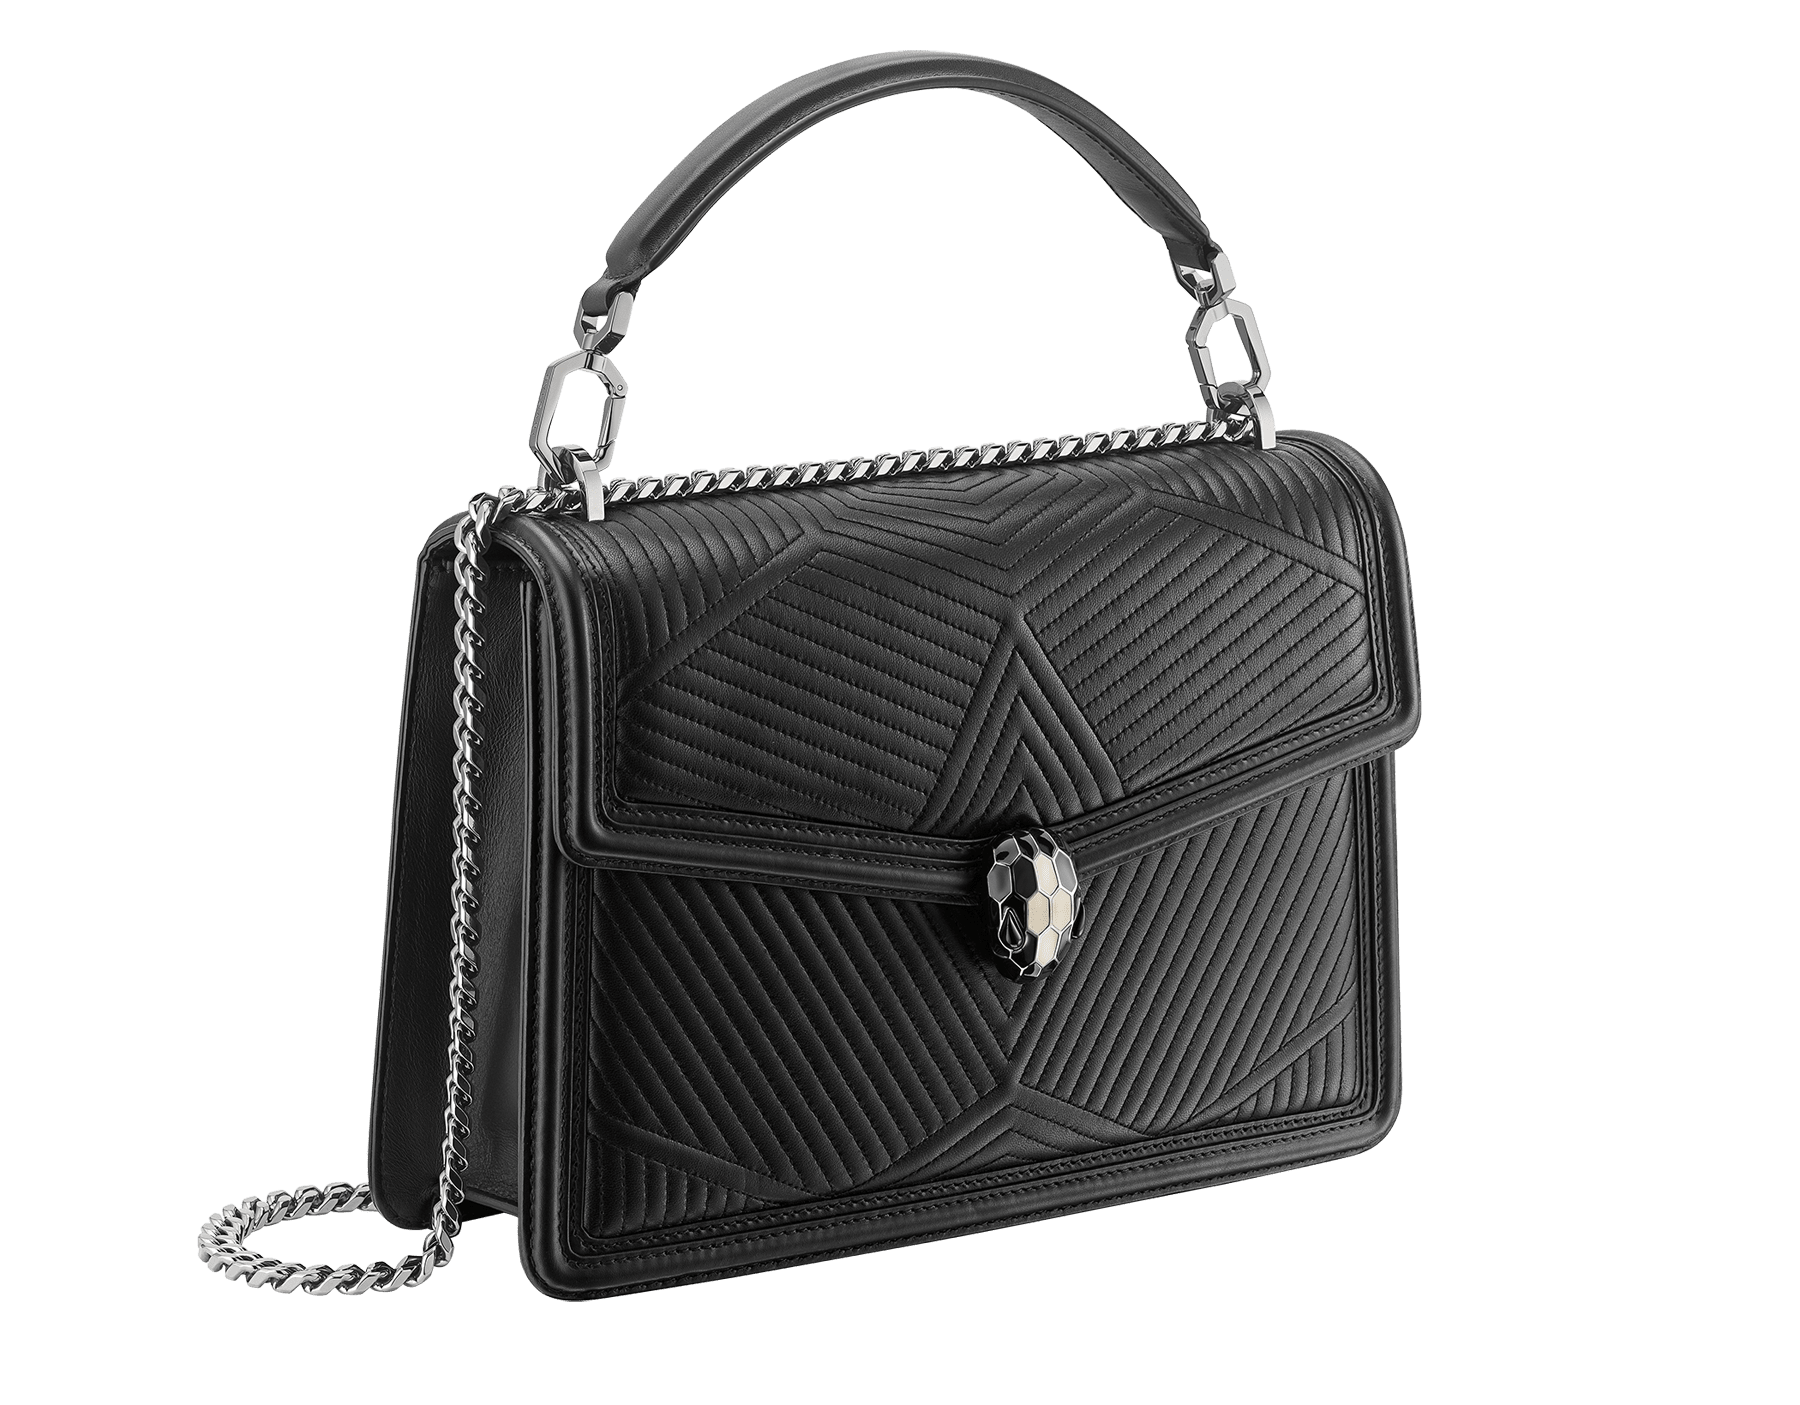 """Serpenti Diamond Blast"" shoulder bag in black quilted nappa leather body and black calf leather frames. Iconic snakehead closure in dark ruthenium plated brass enriched with black and white enamel and black onyx eyes. 287360 image 2"